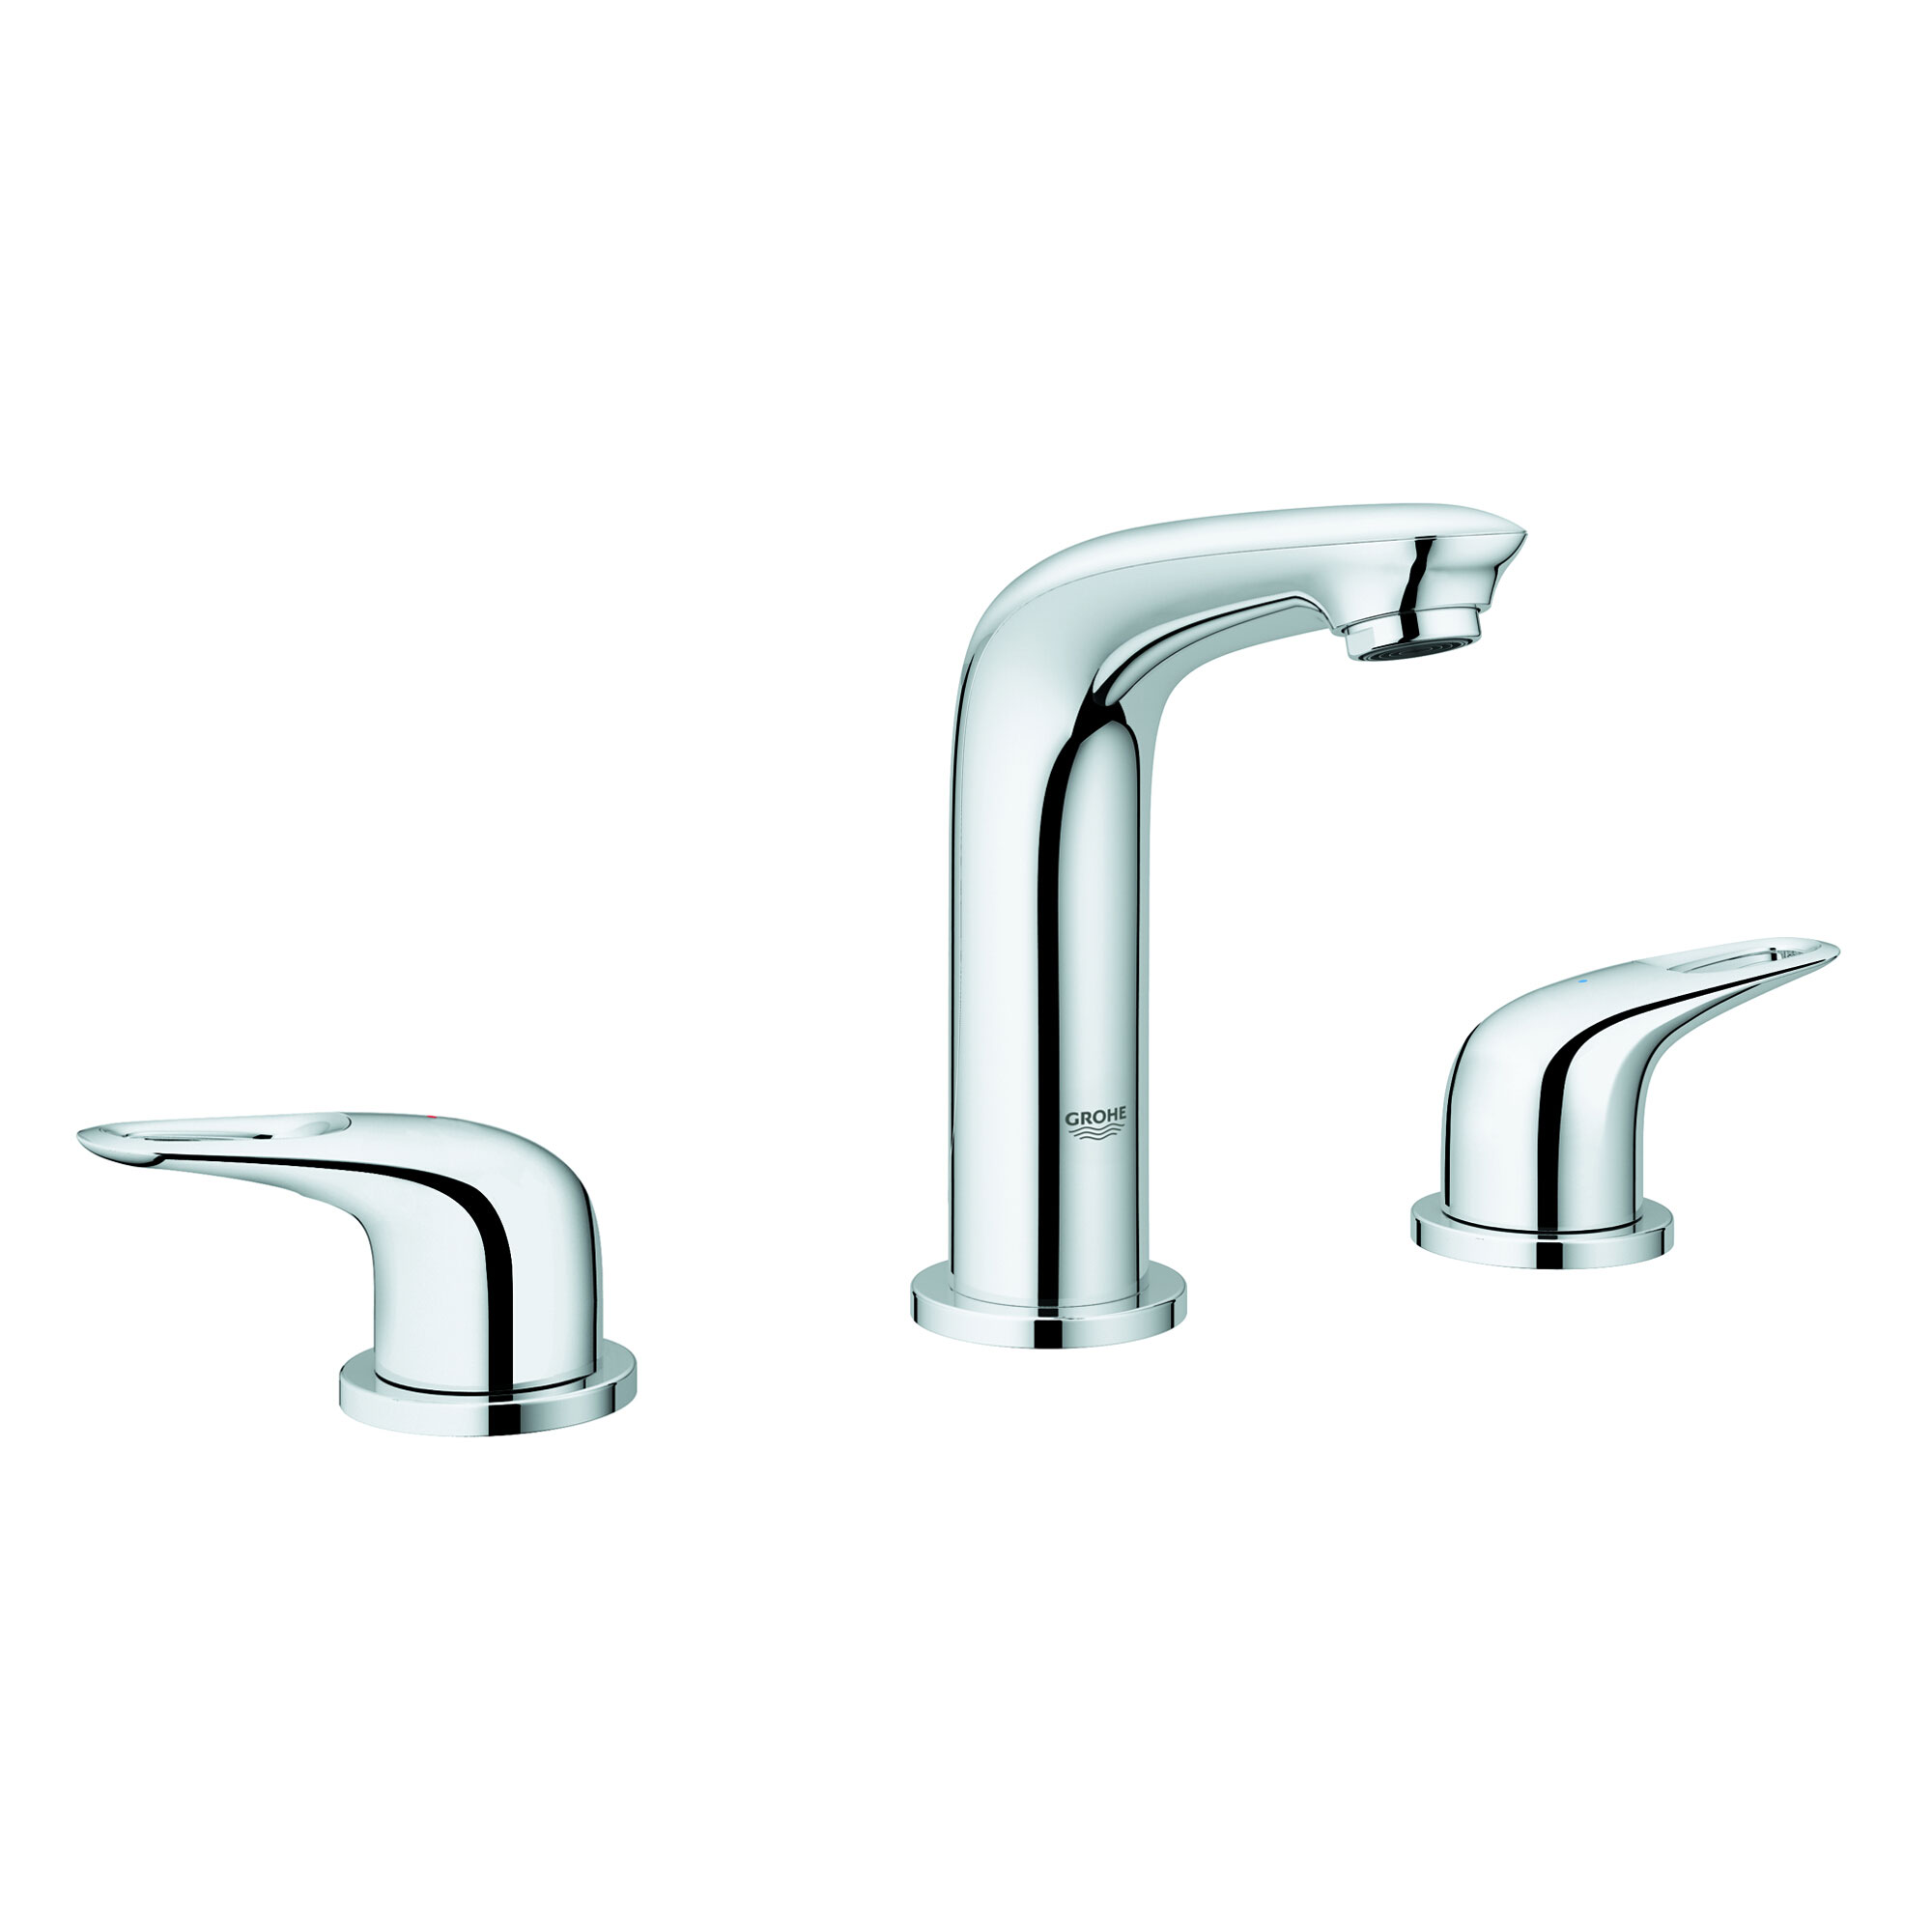 "Grohe 20486003 Eurostyle 8"" Widespread 2 Handle 3 Hole ..."